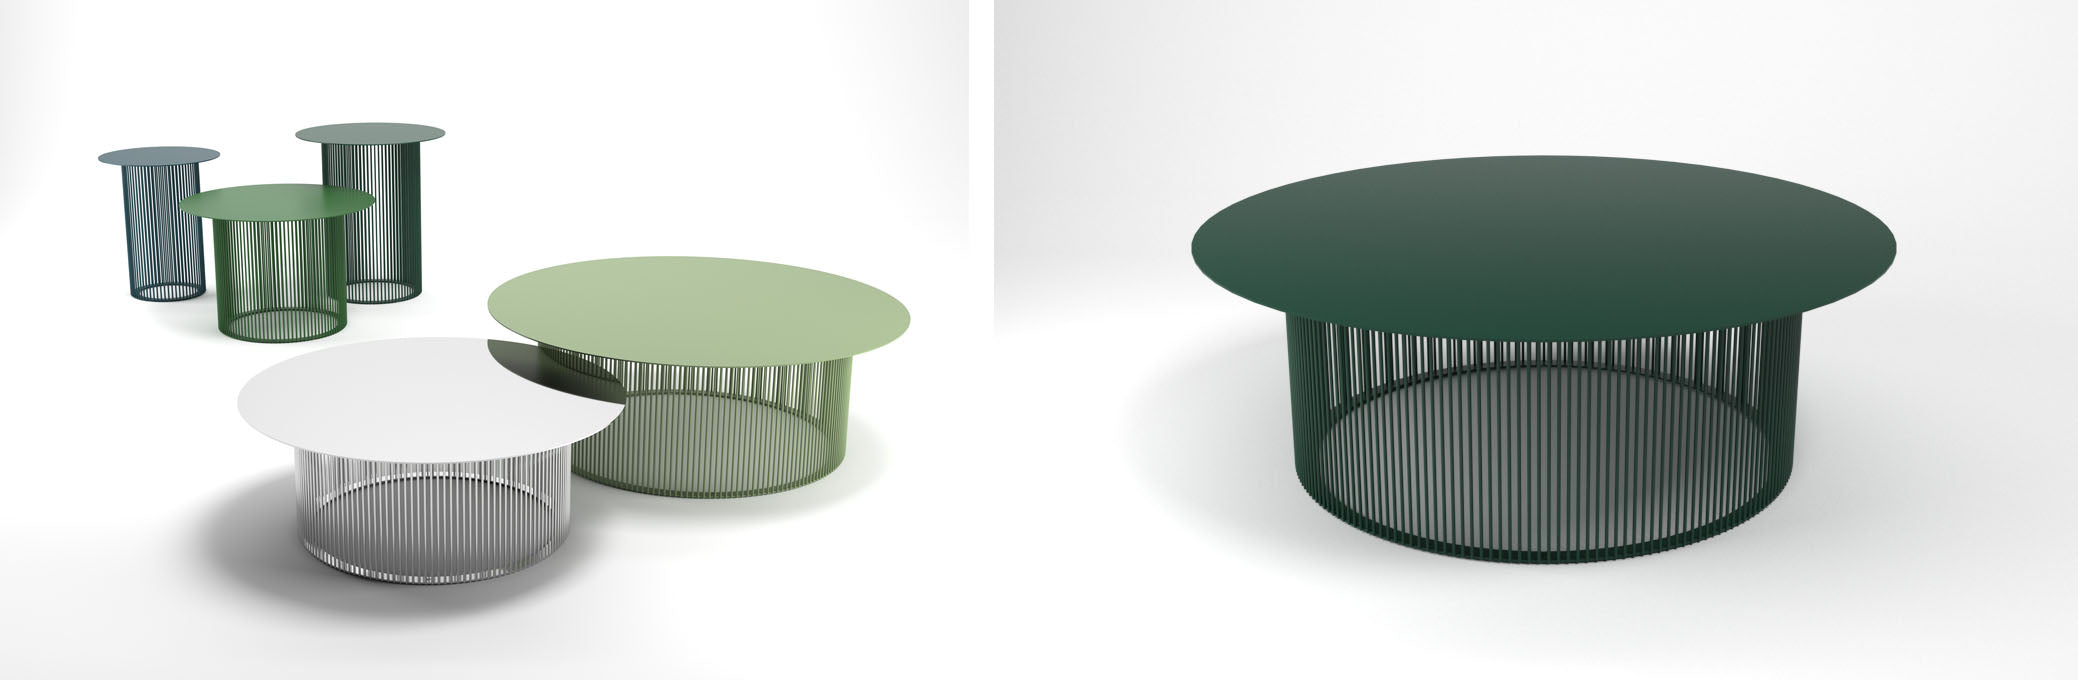 Haldane Martin, Cha Cha outdoor furniture collection, green outdoor tables and chairs.  Haldane Martin outdoor furniture is available at Sarza home goods and furniture store in Rye New York.